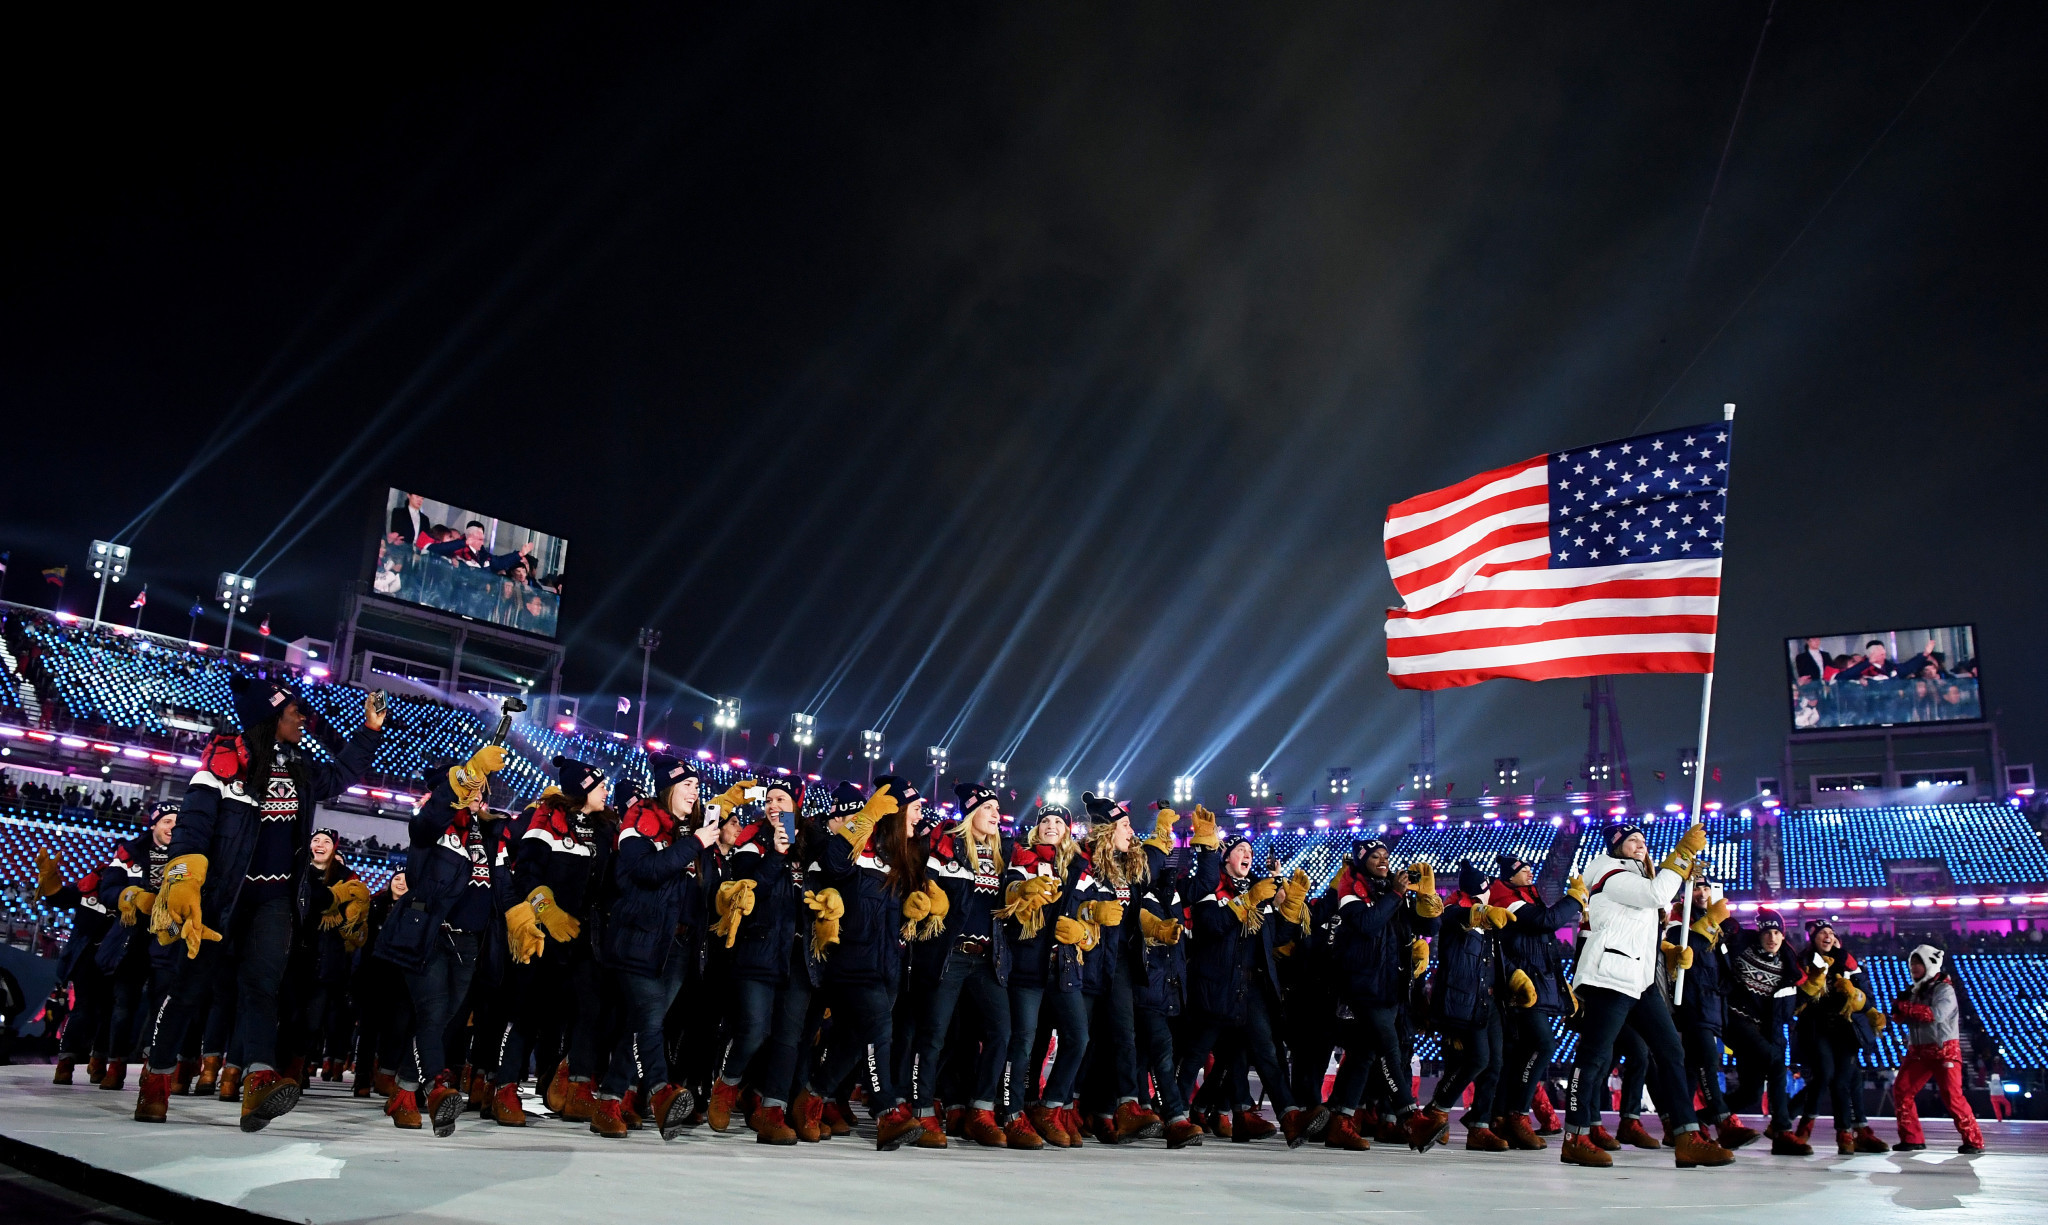 American athletes will not face punishment from the USOPC for podium protests aimed at promoting human rights and social justice at Tokyo 2020 and beyond ©Getty Images